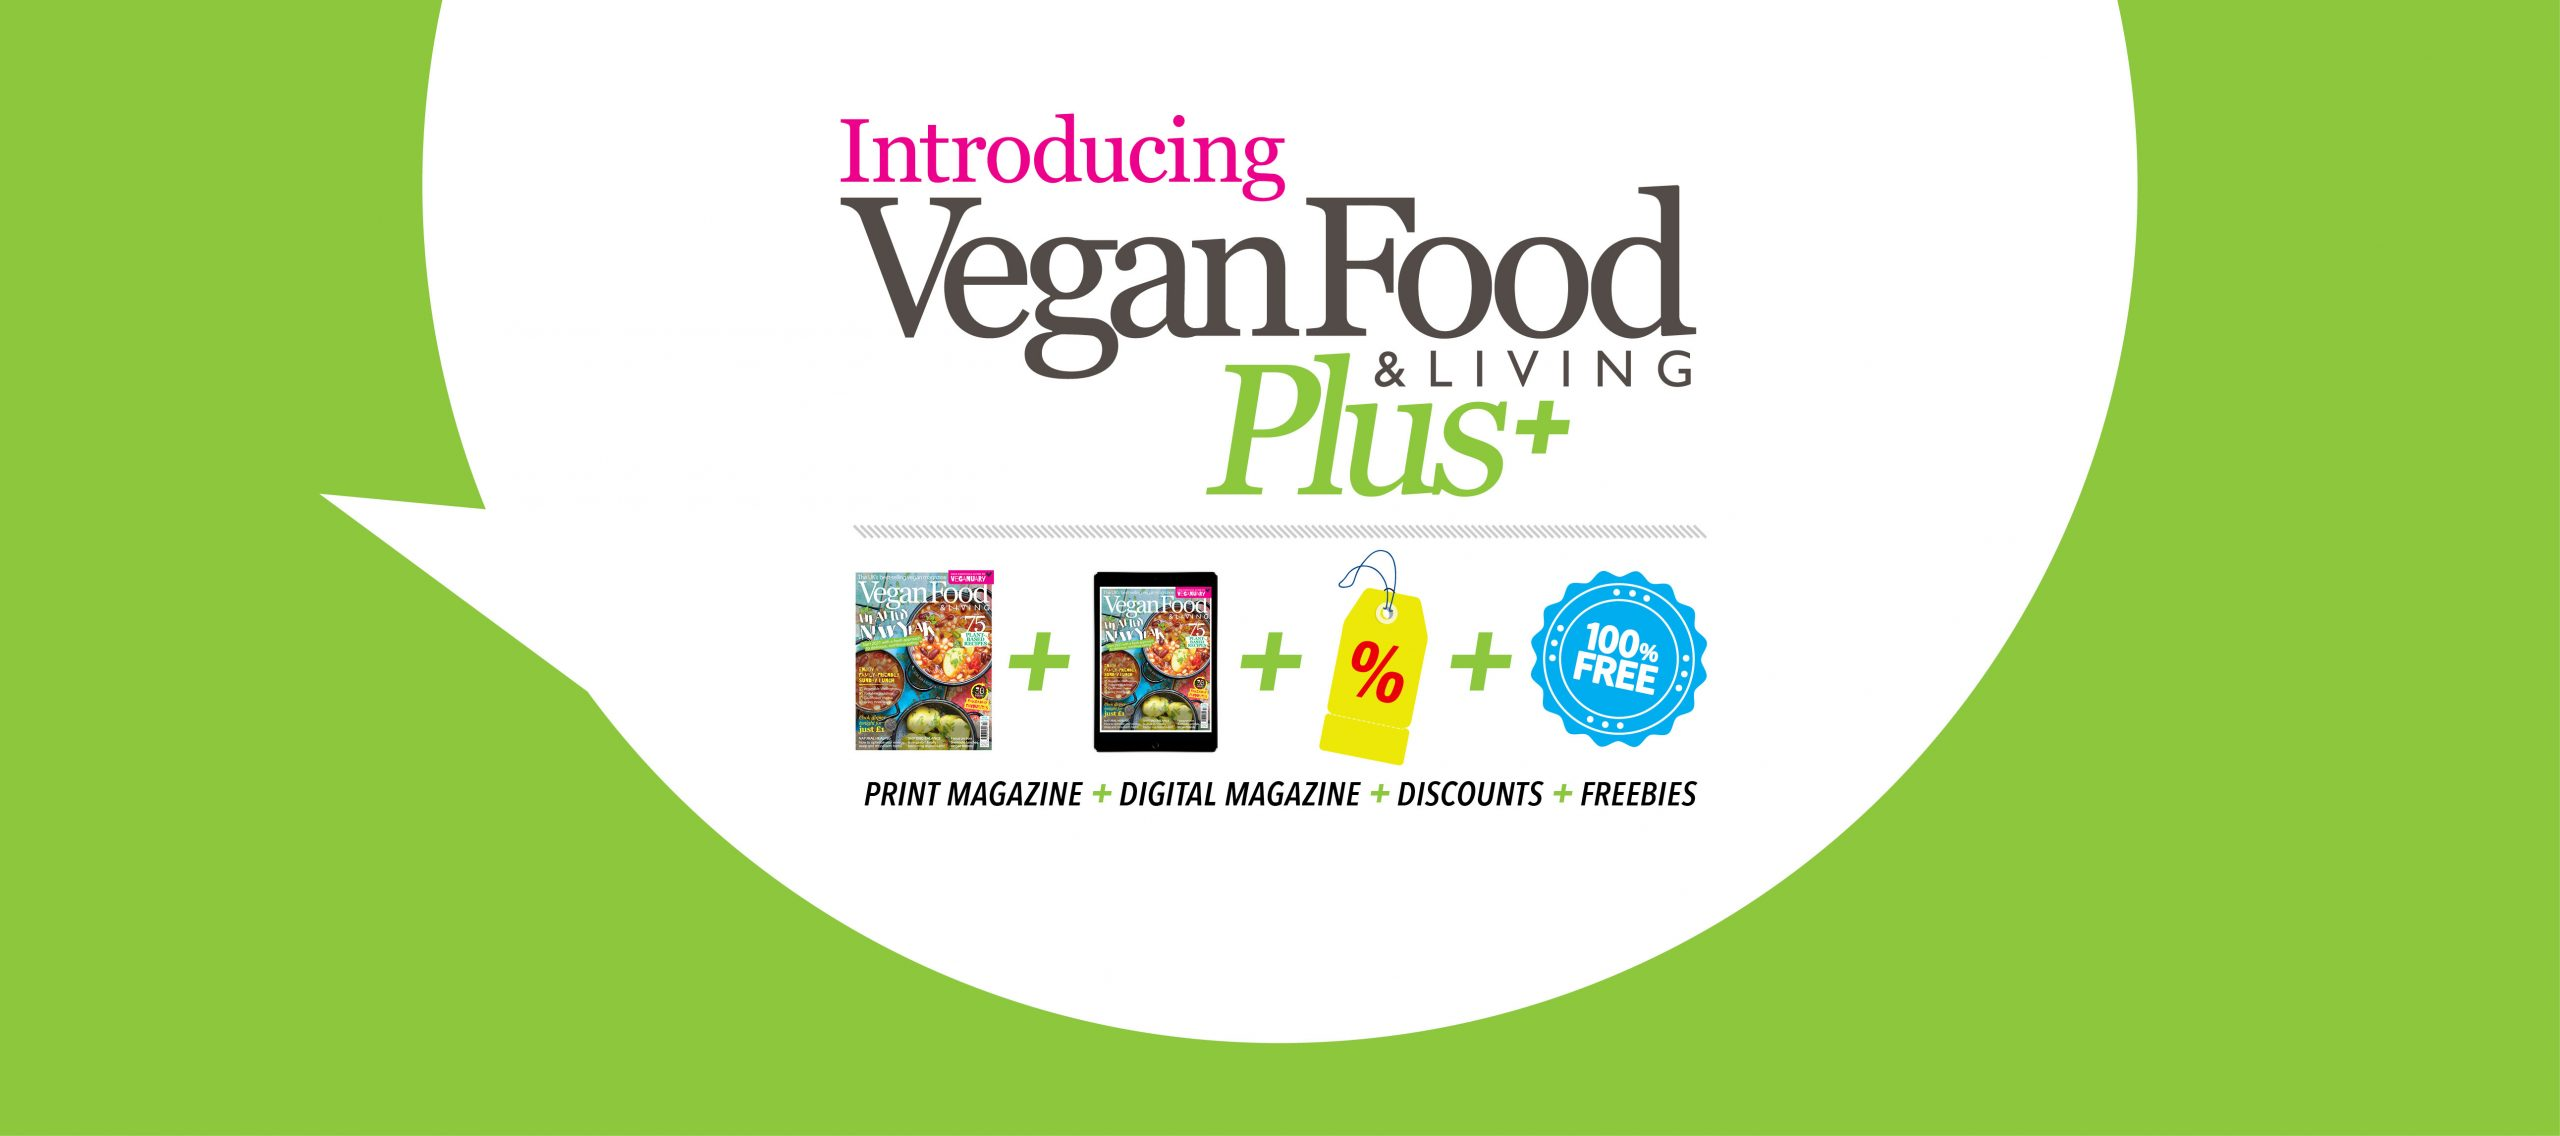 Join the Vegan Food & Living Plus community for exclusive vegan benefits!